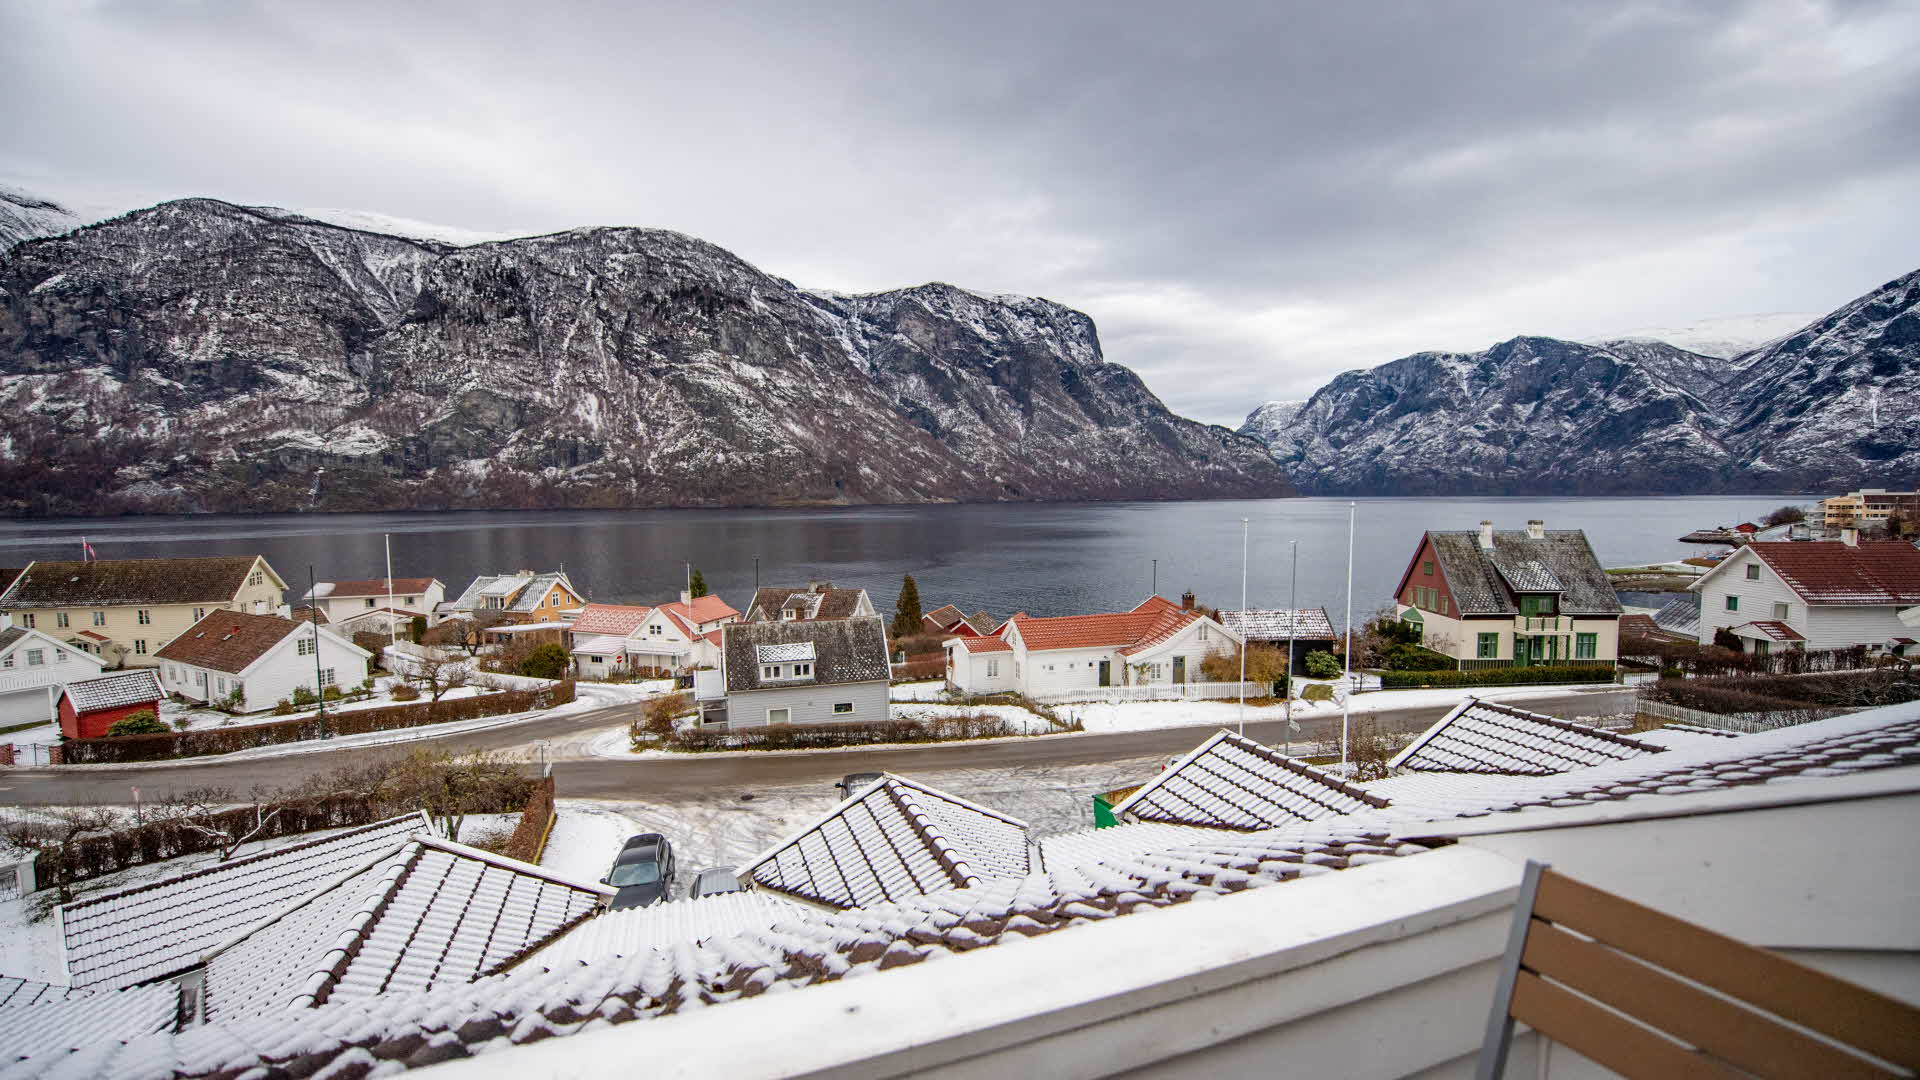 View from balcony at Hotel Aurlandsfjord in winter overlooking UNESCO Aurlandsfjord